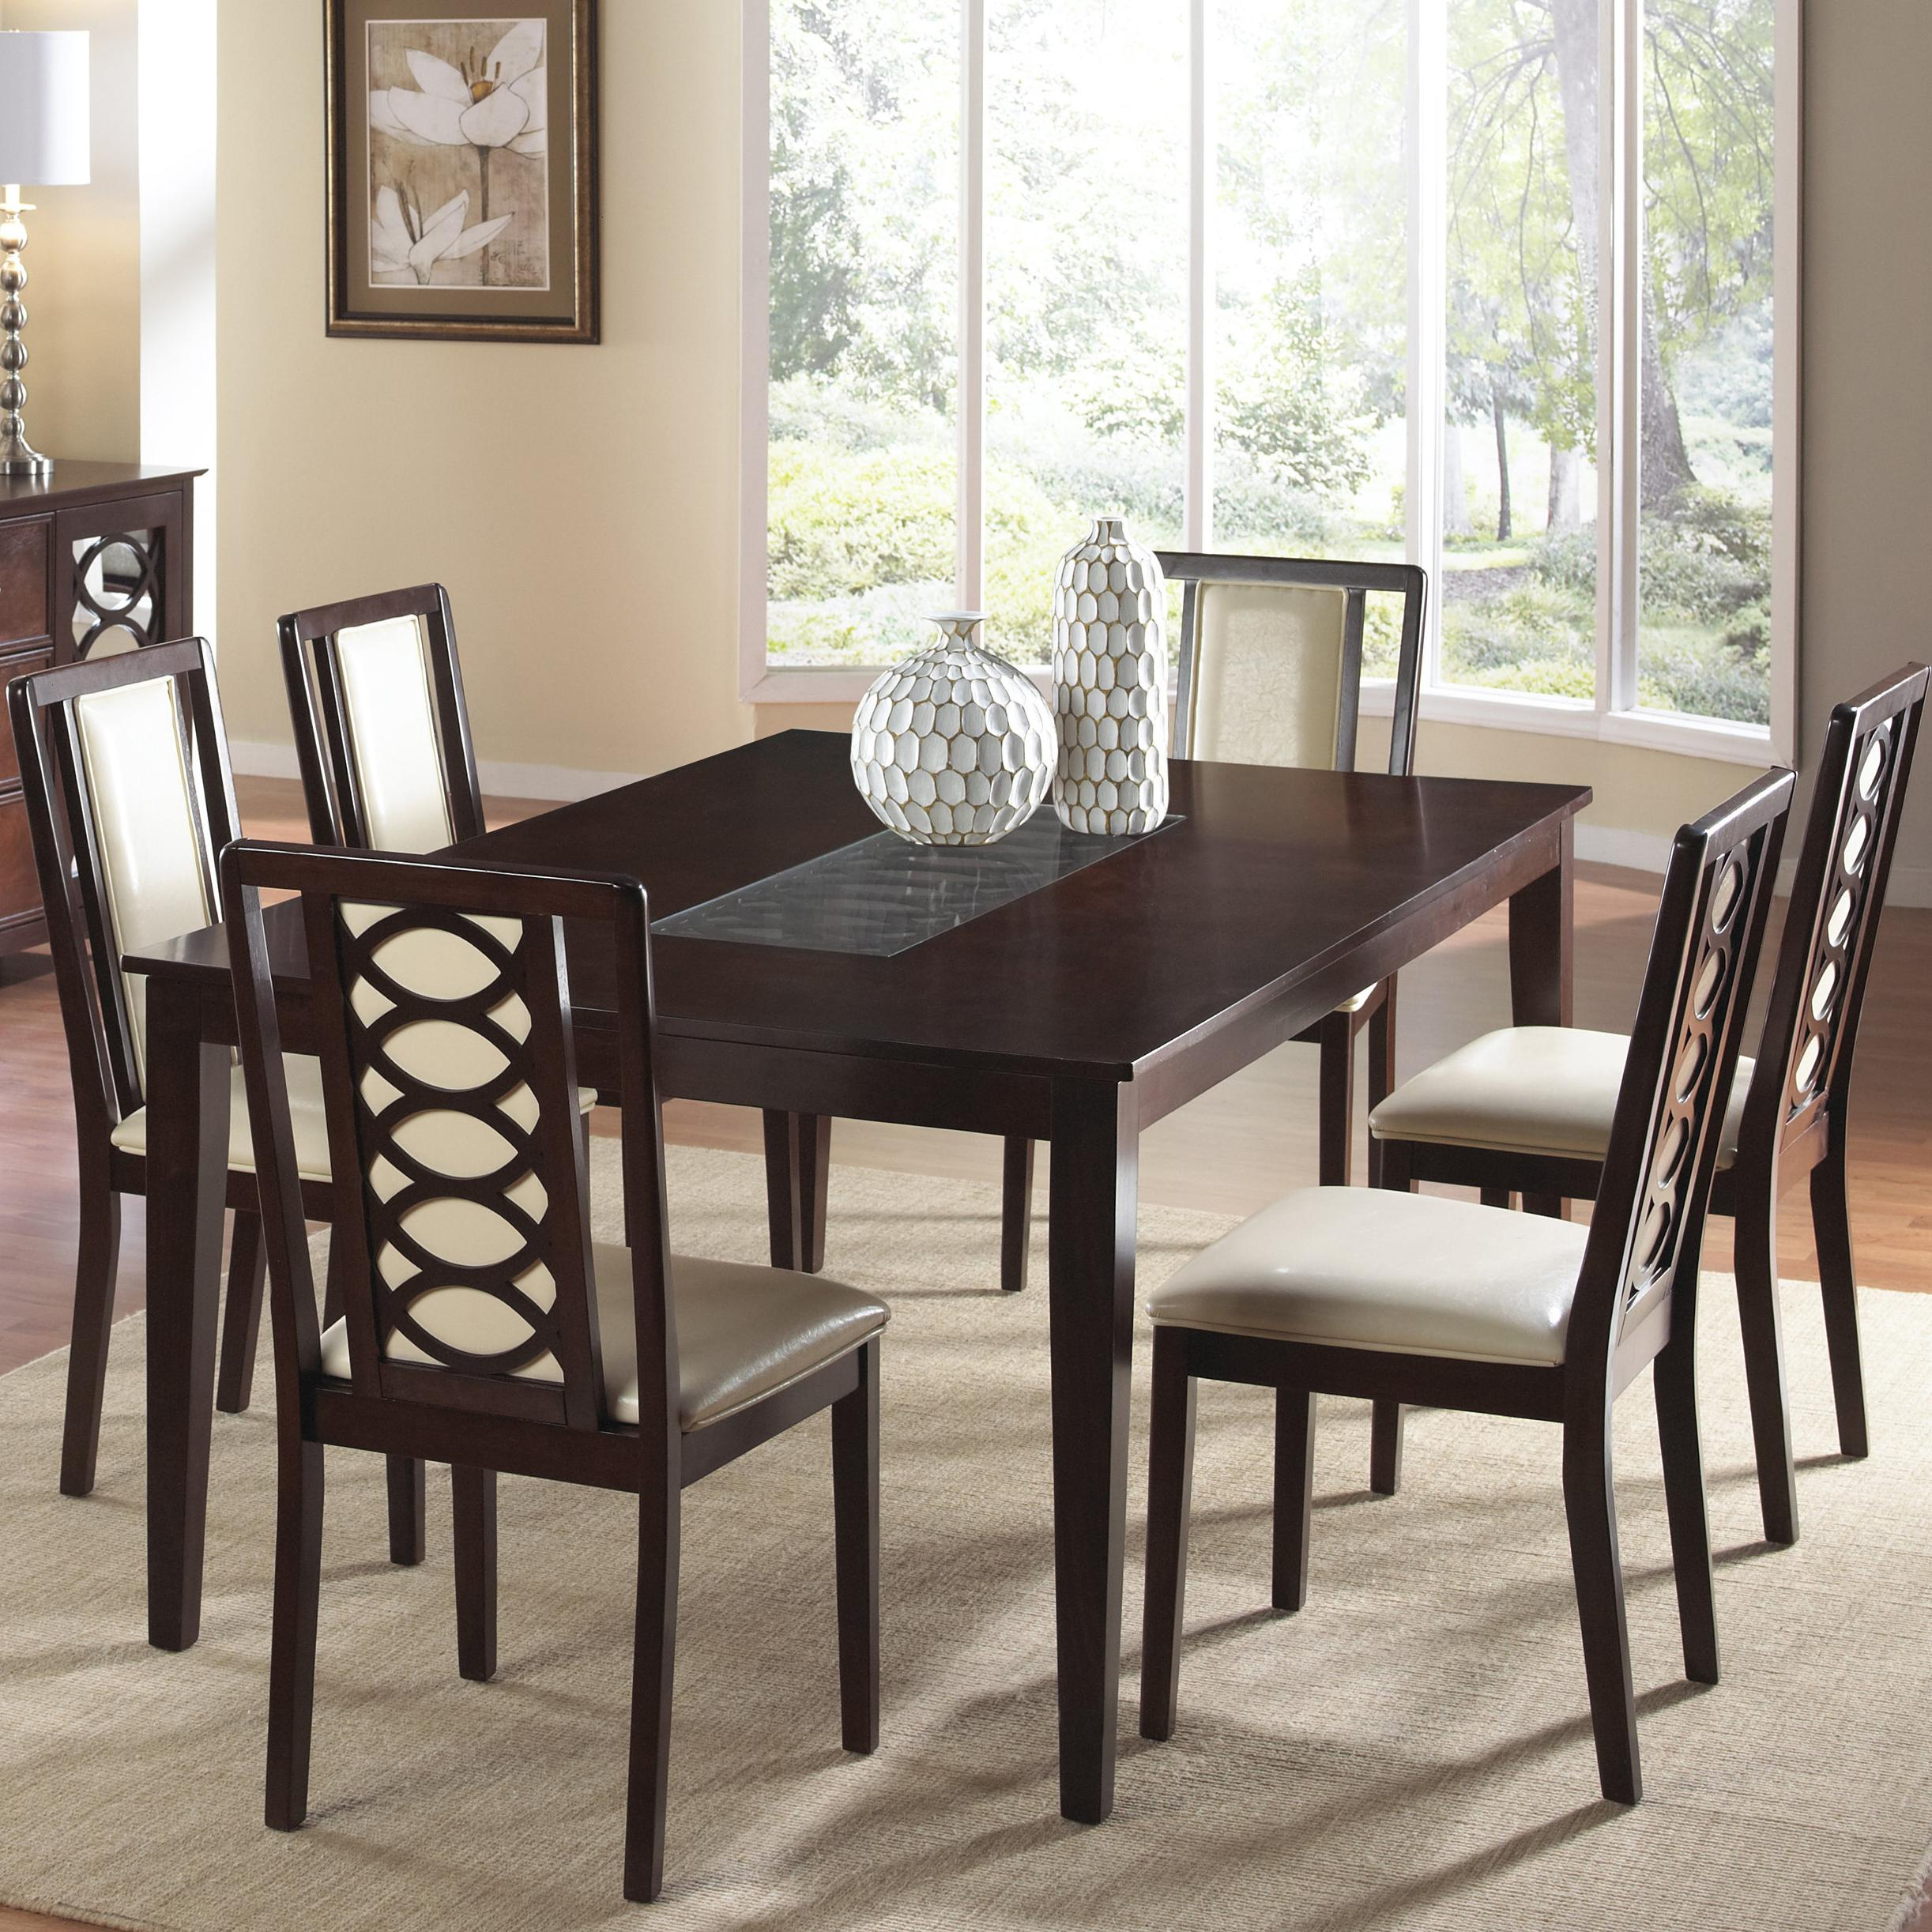 Dining Room Sets Nj